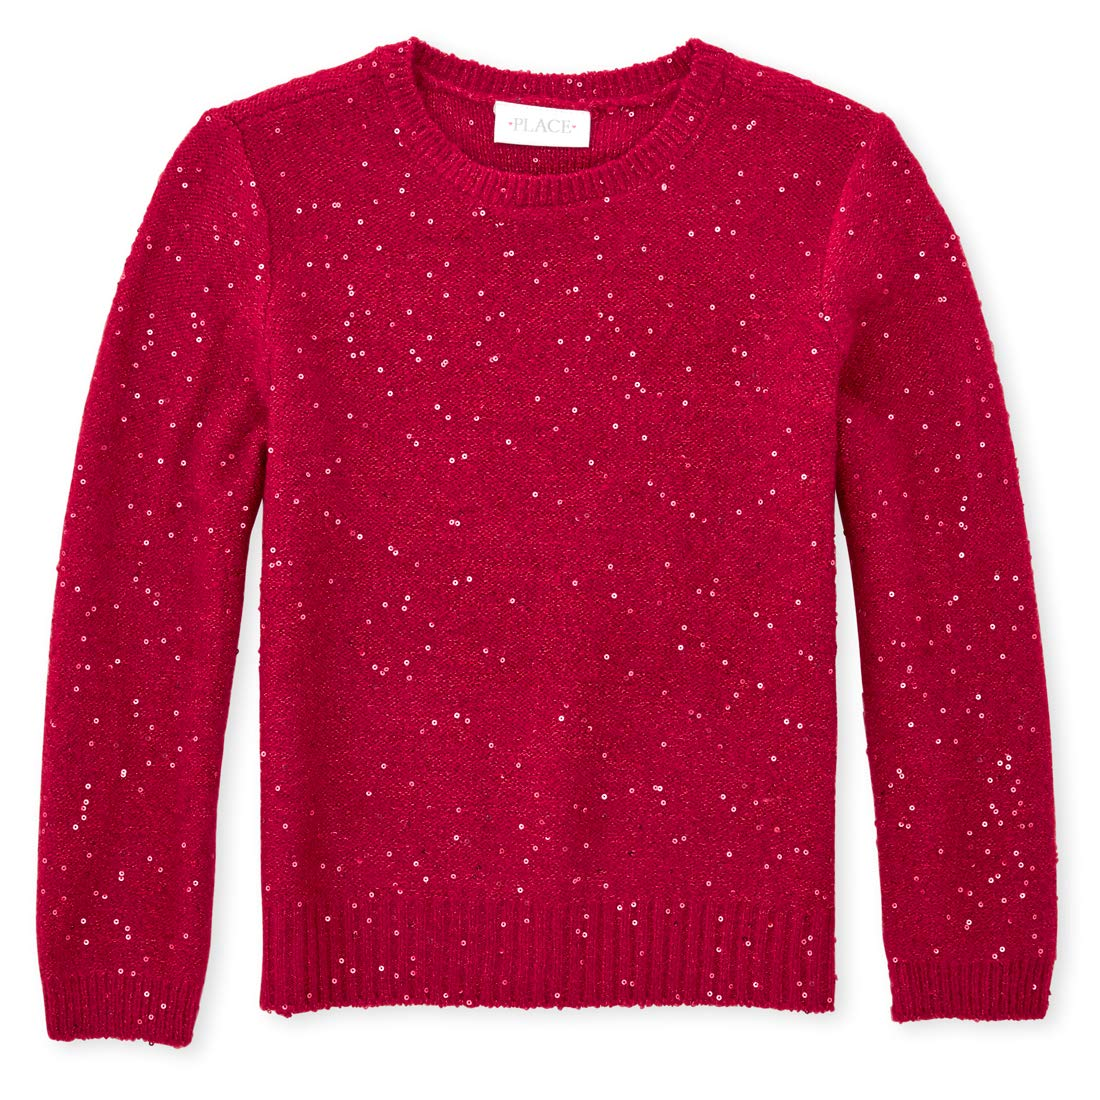 The Childrens Place Girls Big Sequin Sweater